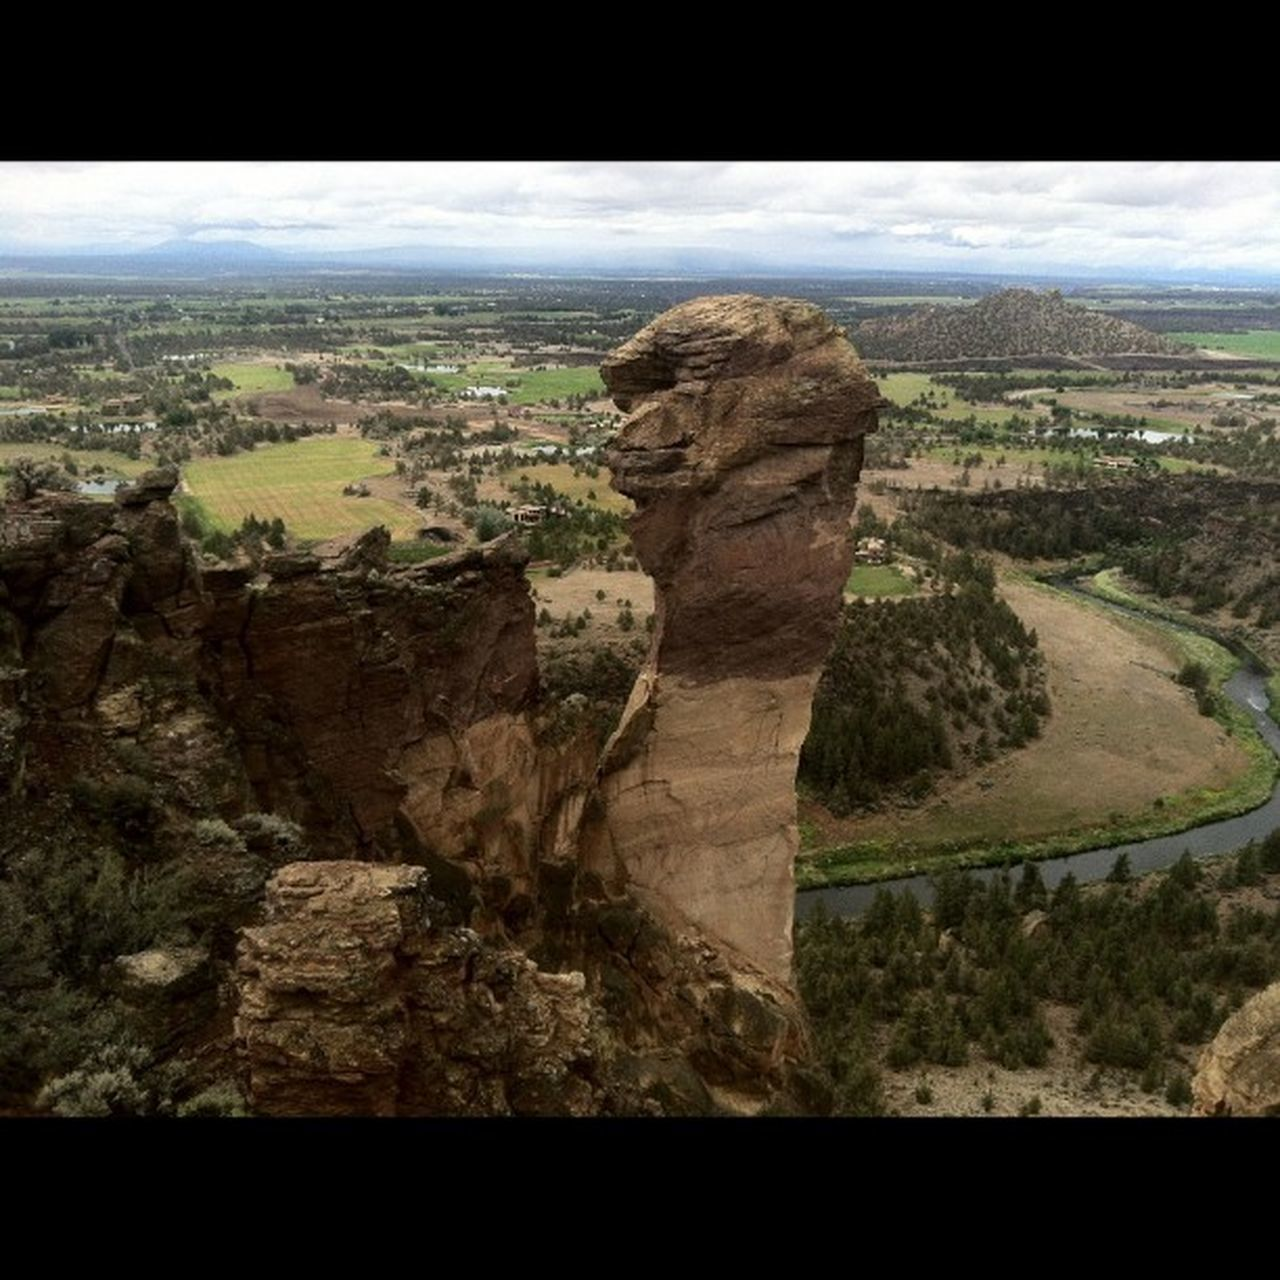 Canon_photos Natgeotravel Smithrock RockClimbing Climbing_pictures_of_instagram Rei1440project Greettheoutdoors Lumiaphotography Spreadingthestoke LiveYourAdventure Visitbend Bendoregon BestOfOregon Bestofnorthwest Bestmountainartists Cascadiaexplored Discoveroregon ExploreOregon Oregonexplored PNWonderland Pnwcollective Upperleftusa Epic_captures Myawaycontest